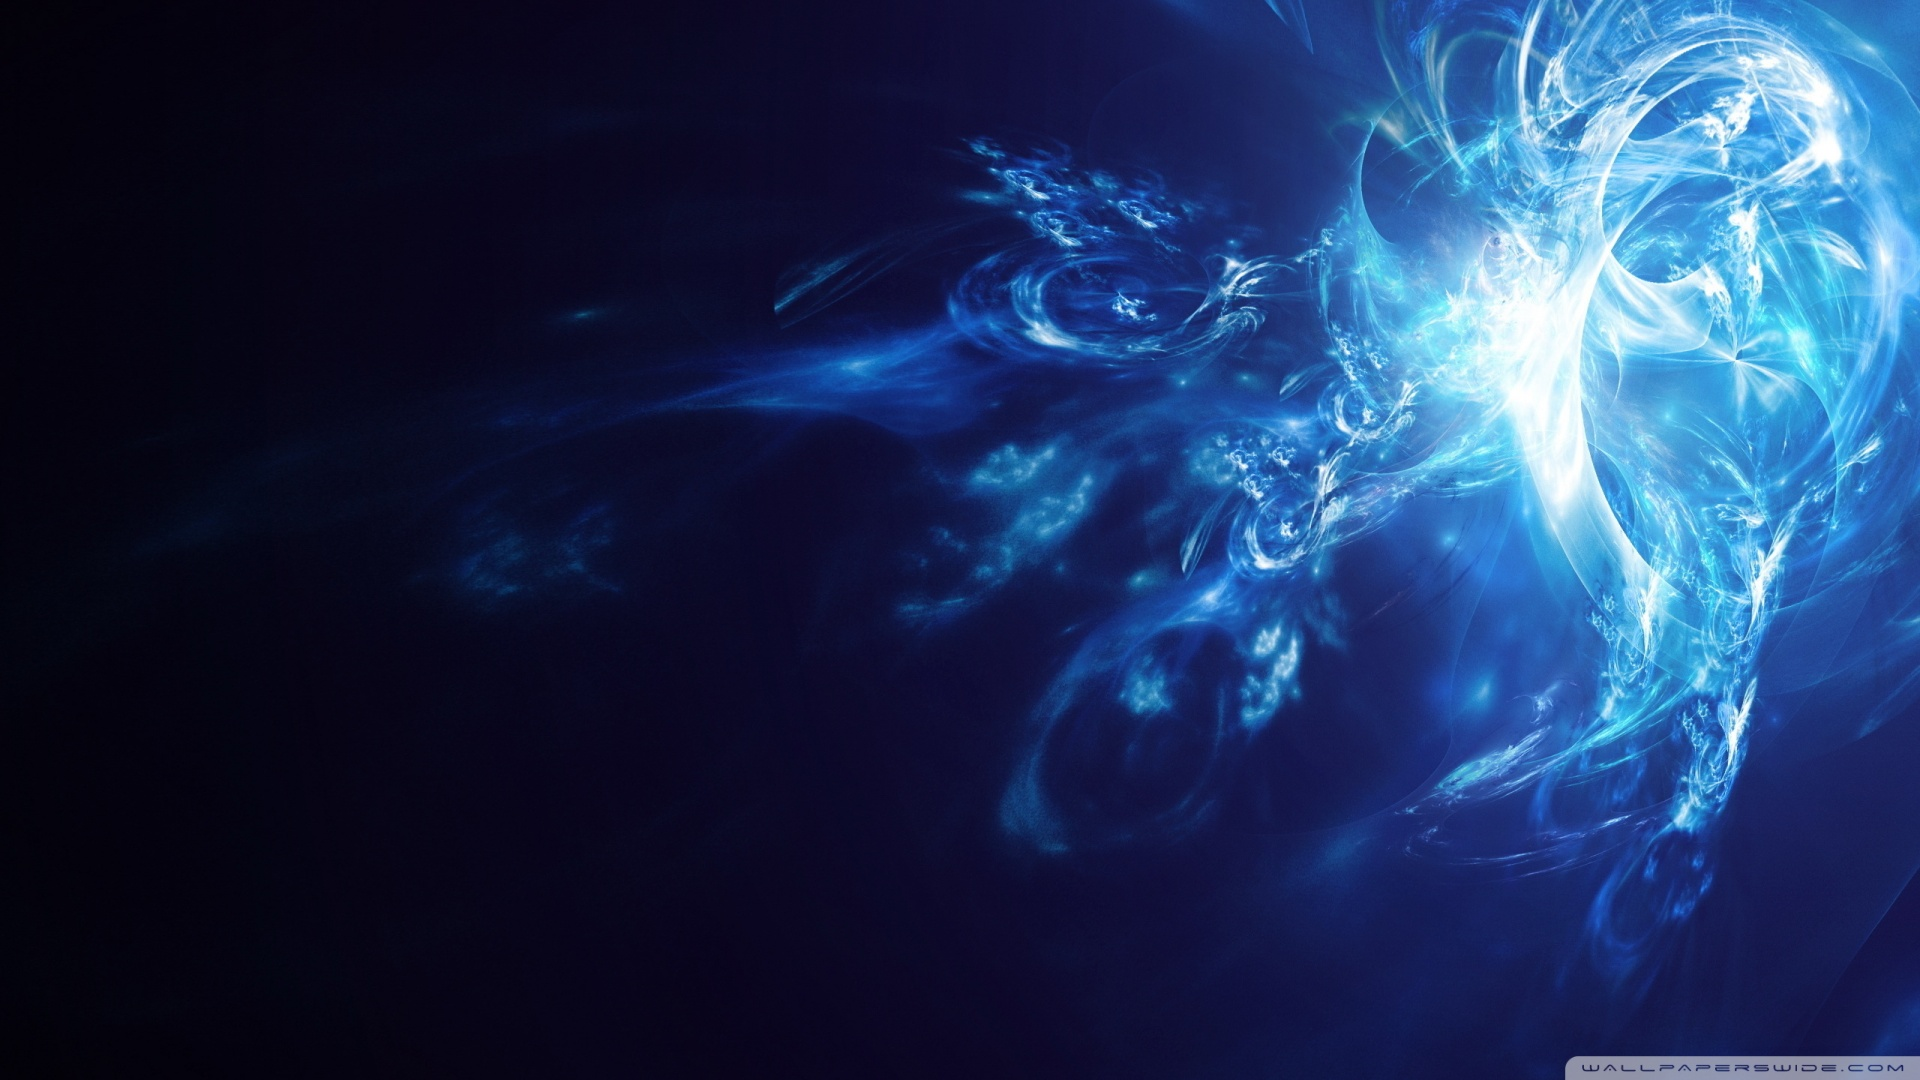 Blue Smoke 2 Wallpaper 1920x1080 Blue Smoke 2 1920x1080